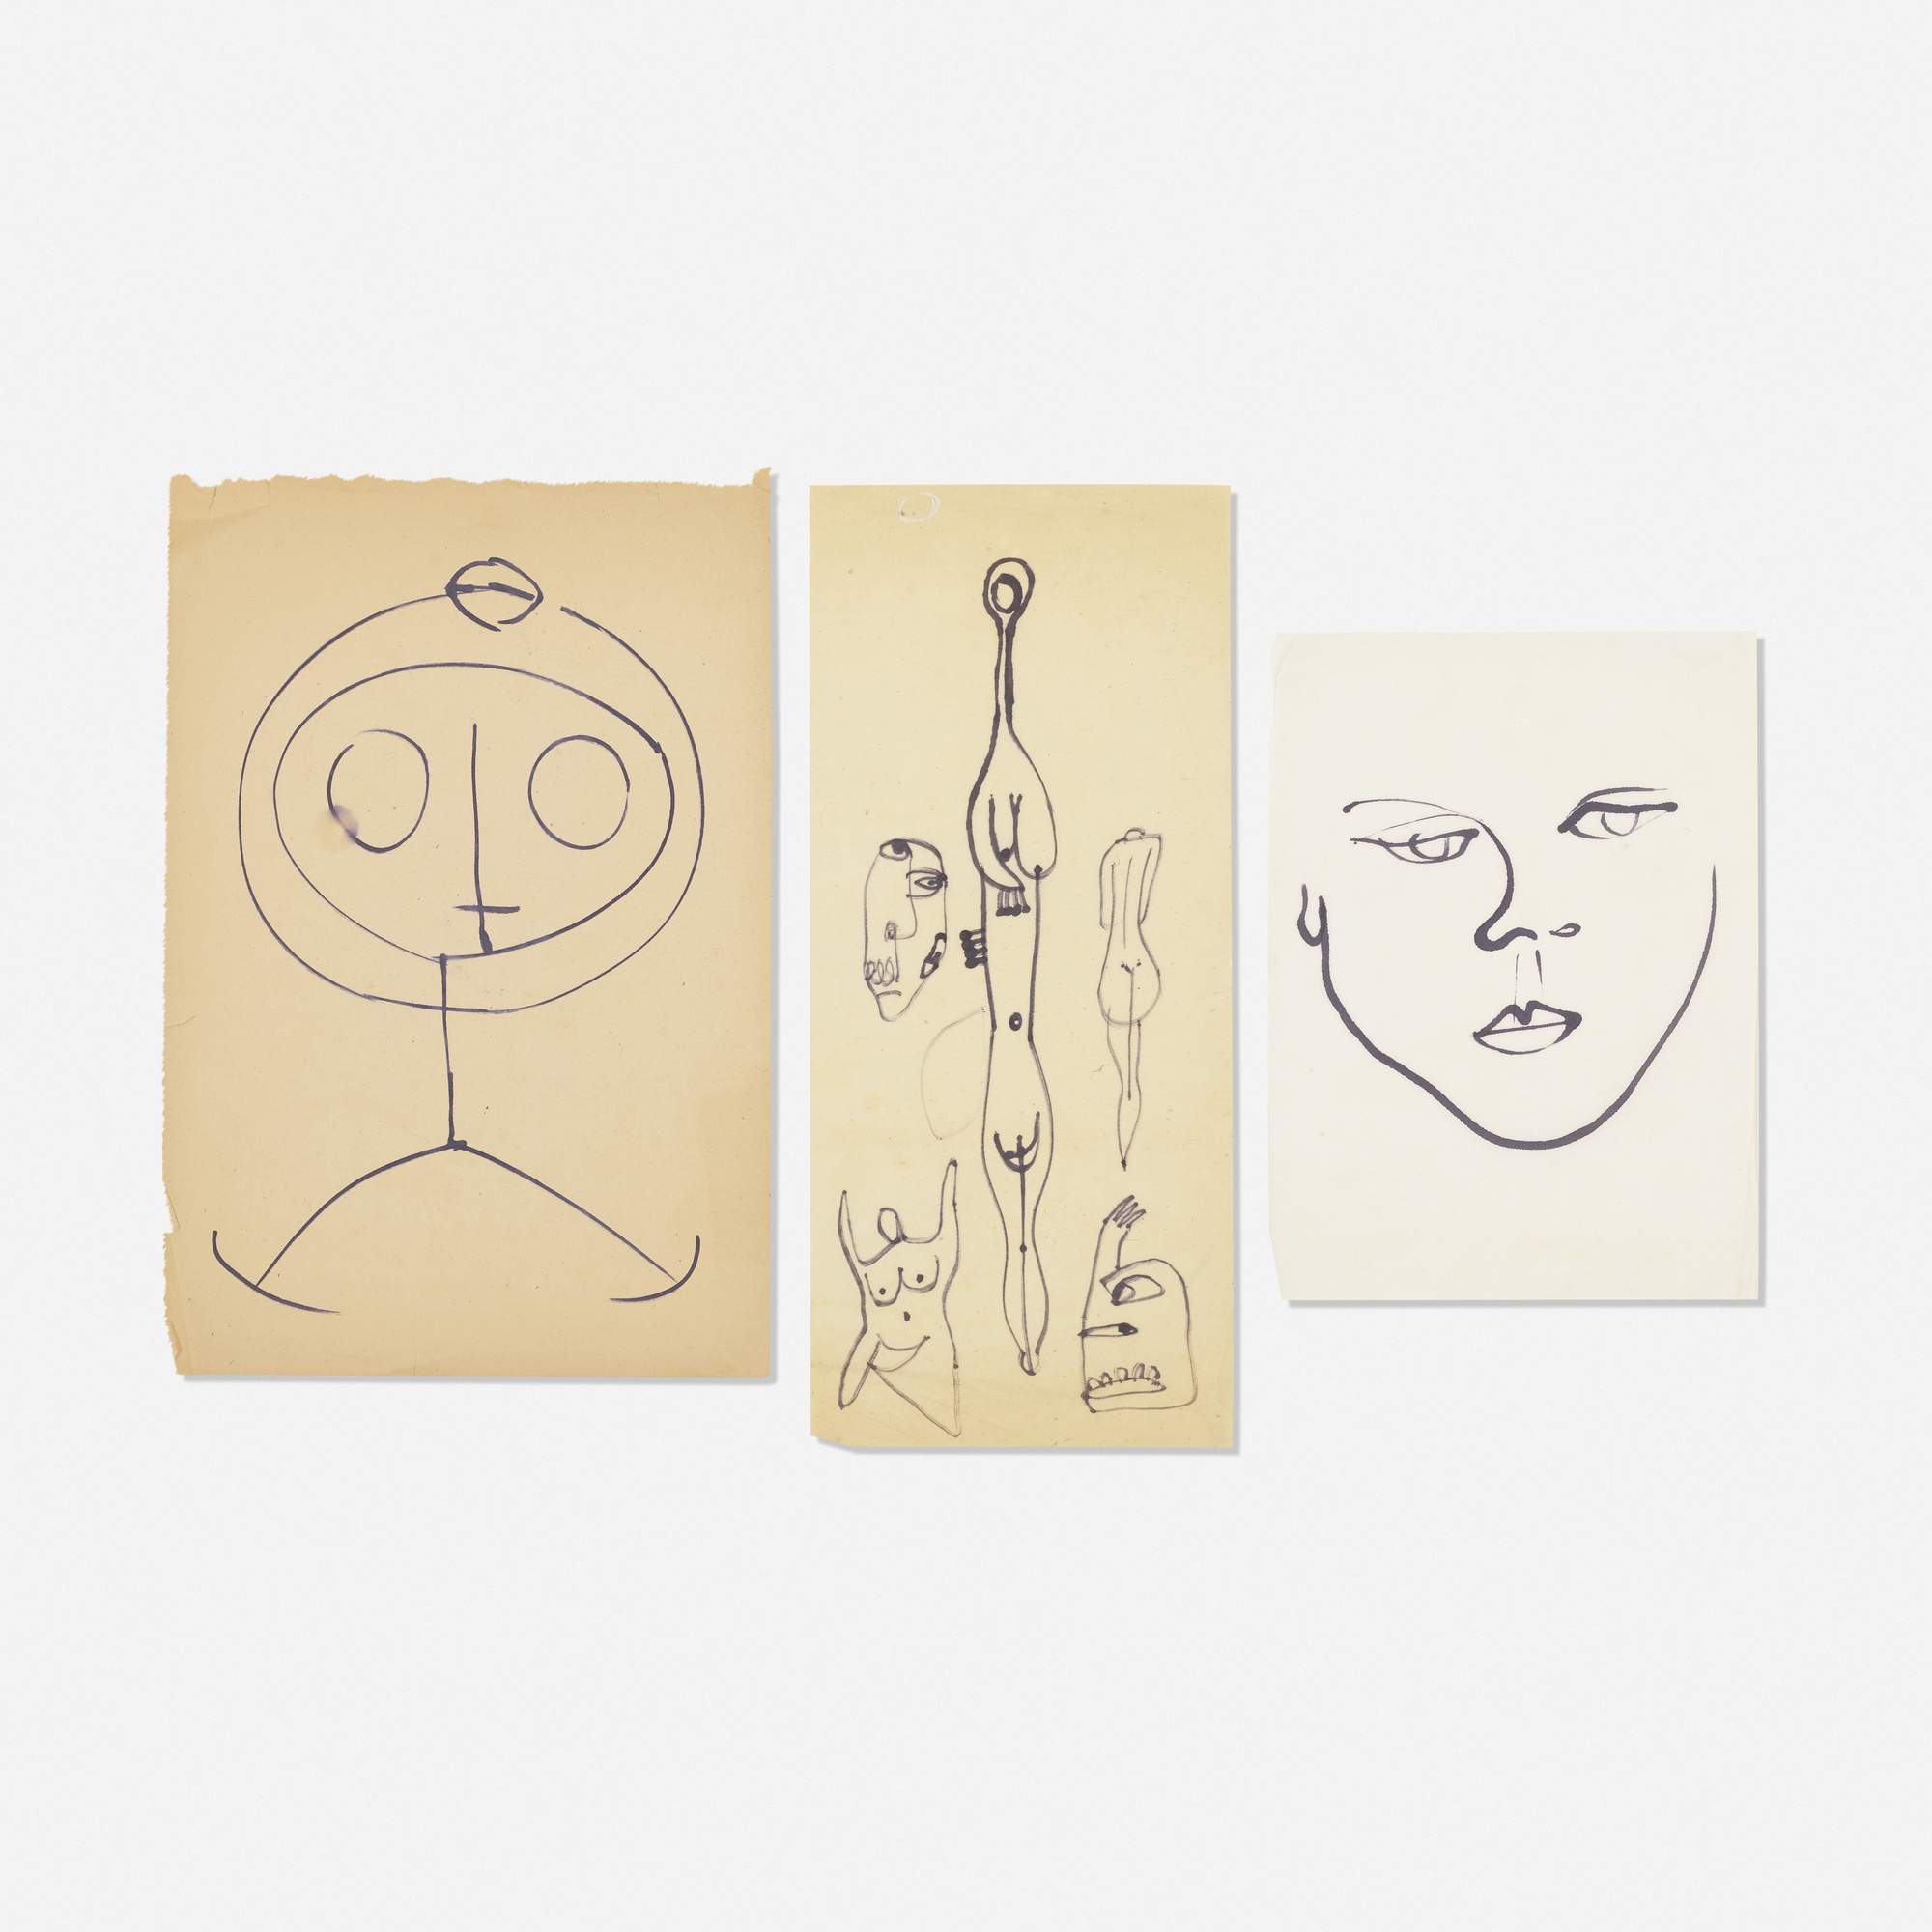 240: Hugo Weber / Collection of three drawings (1 of 1)